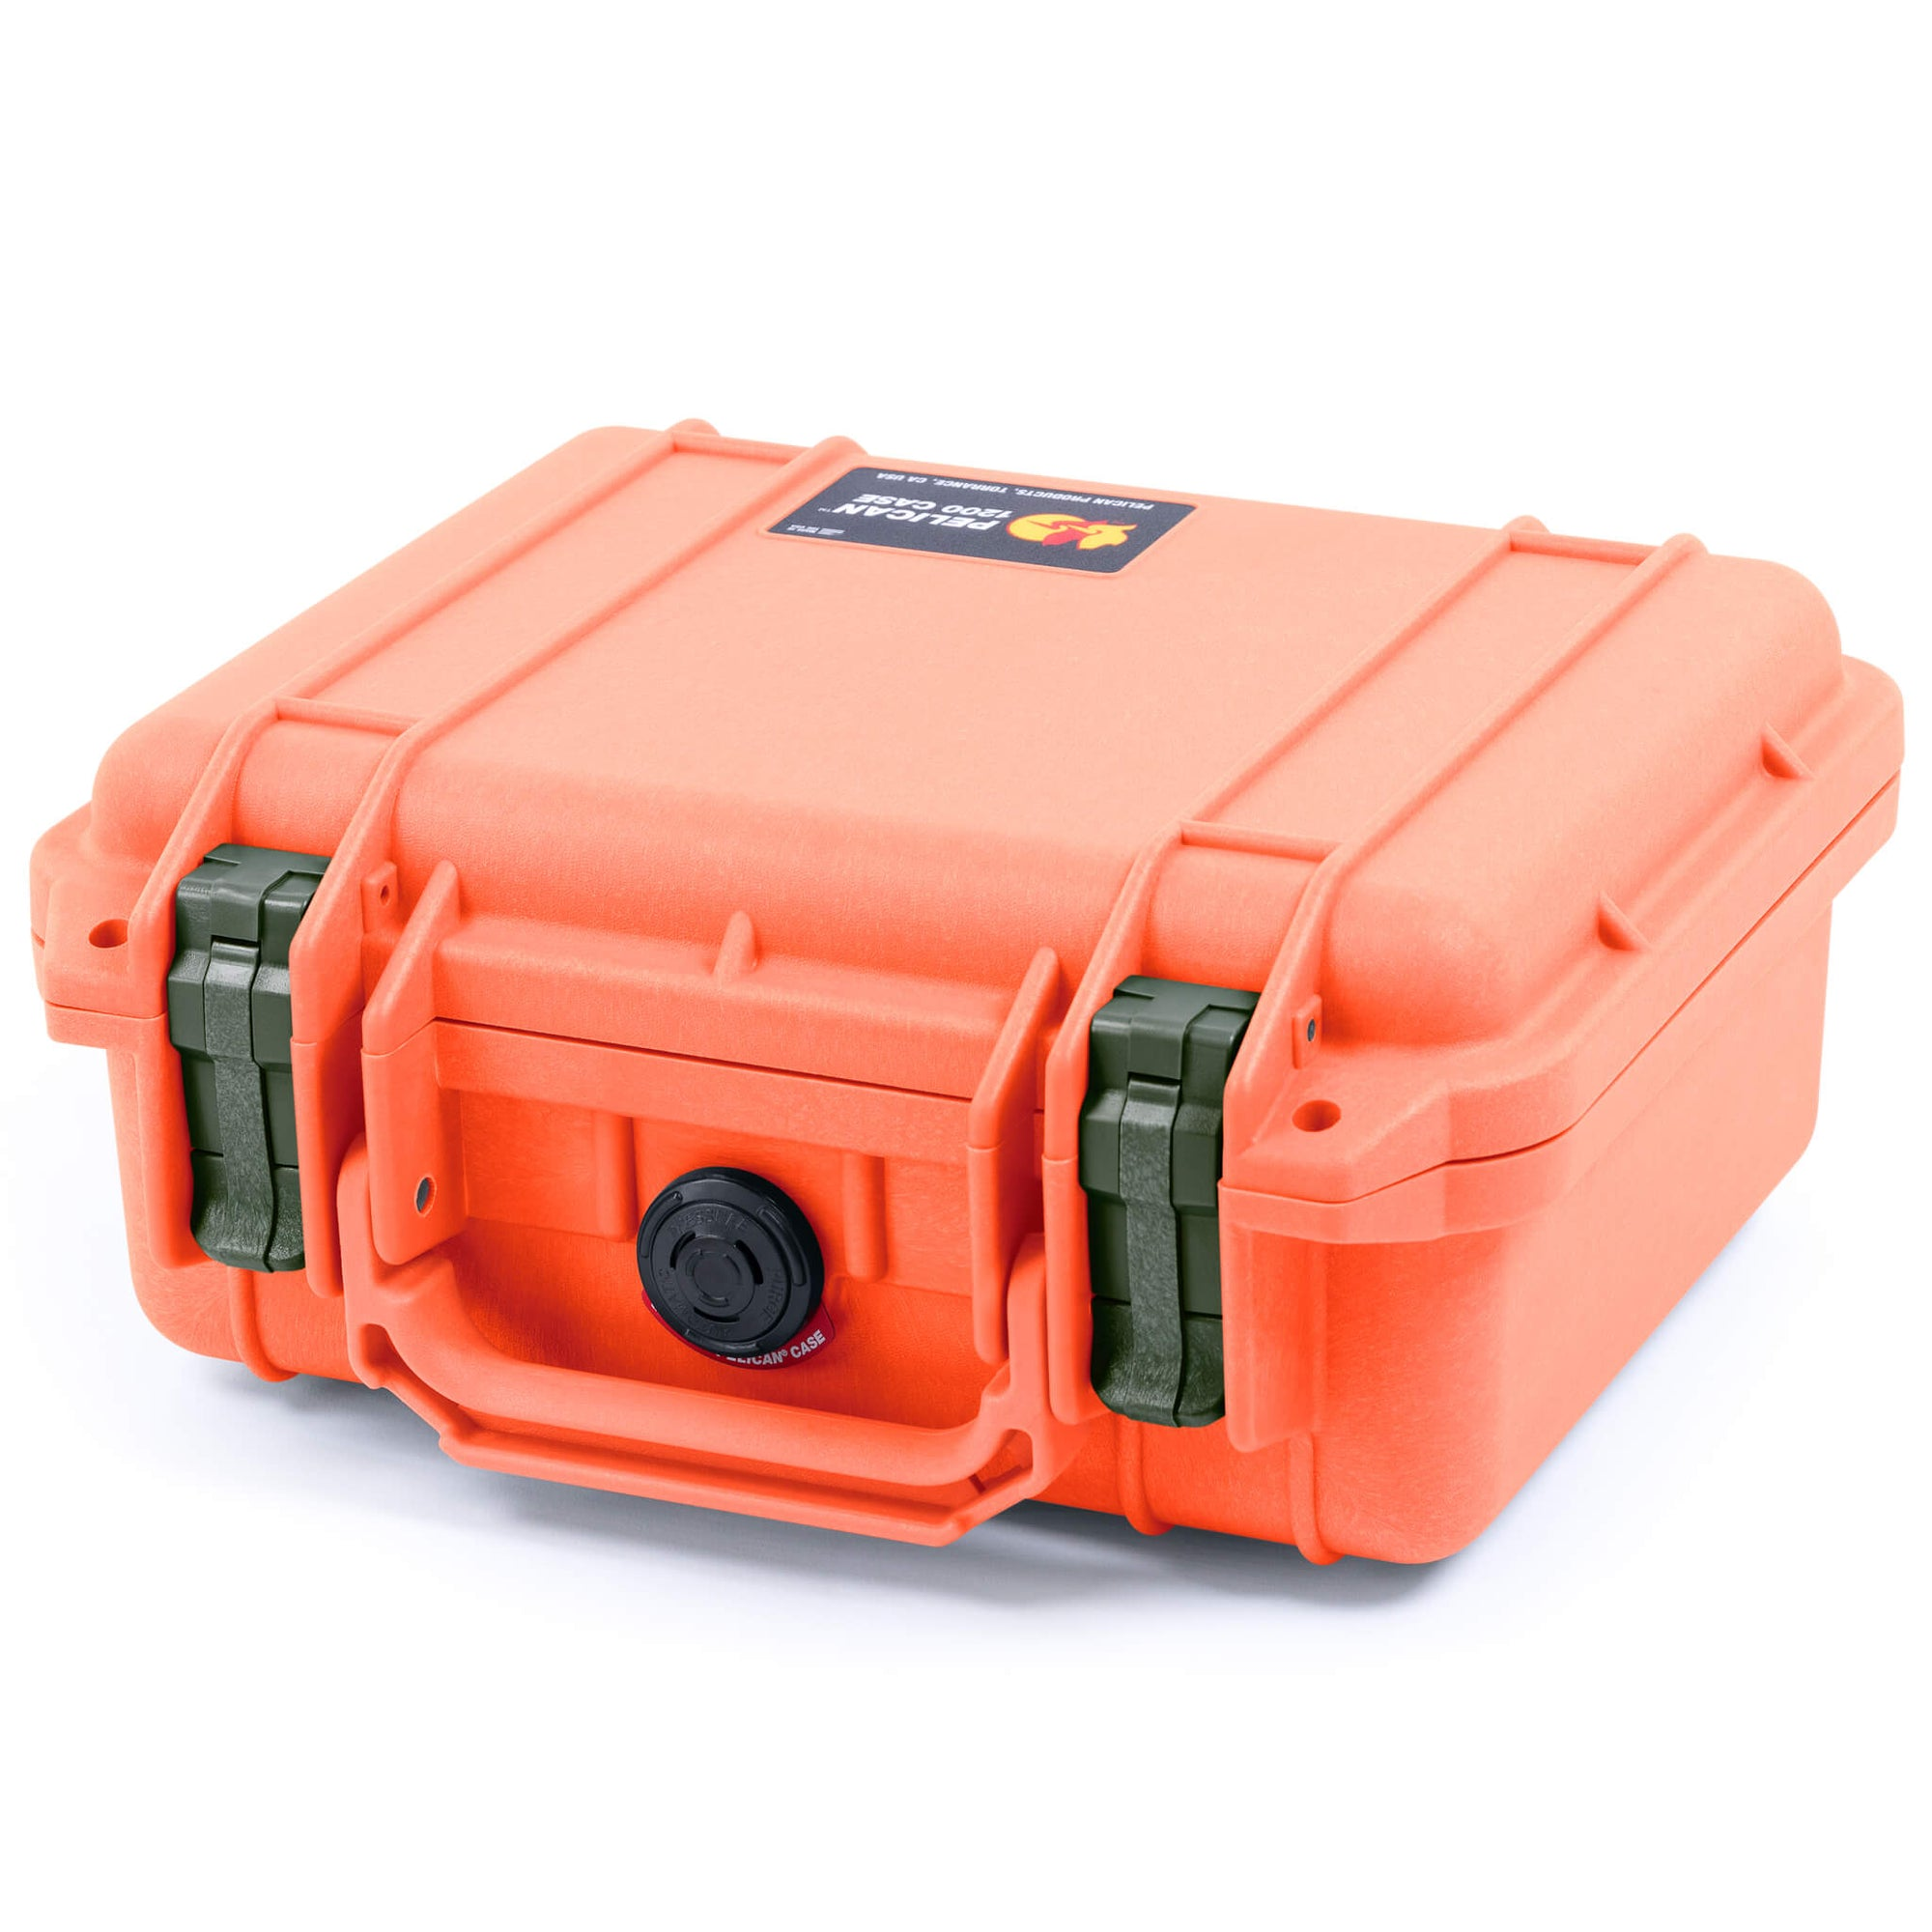 Pelican 1200 Case, Orange with OD Green Handle & Latches